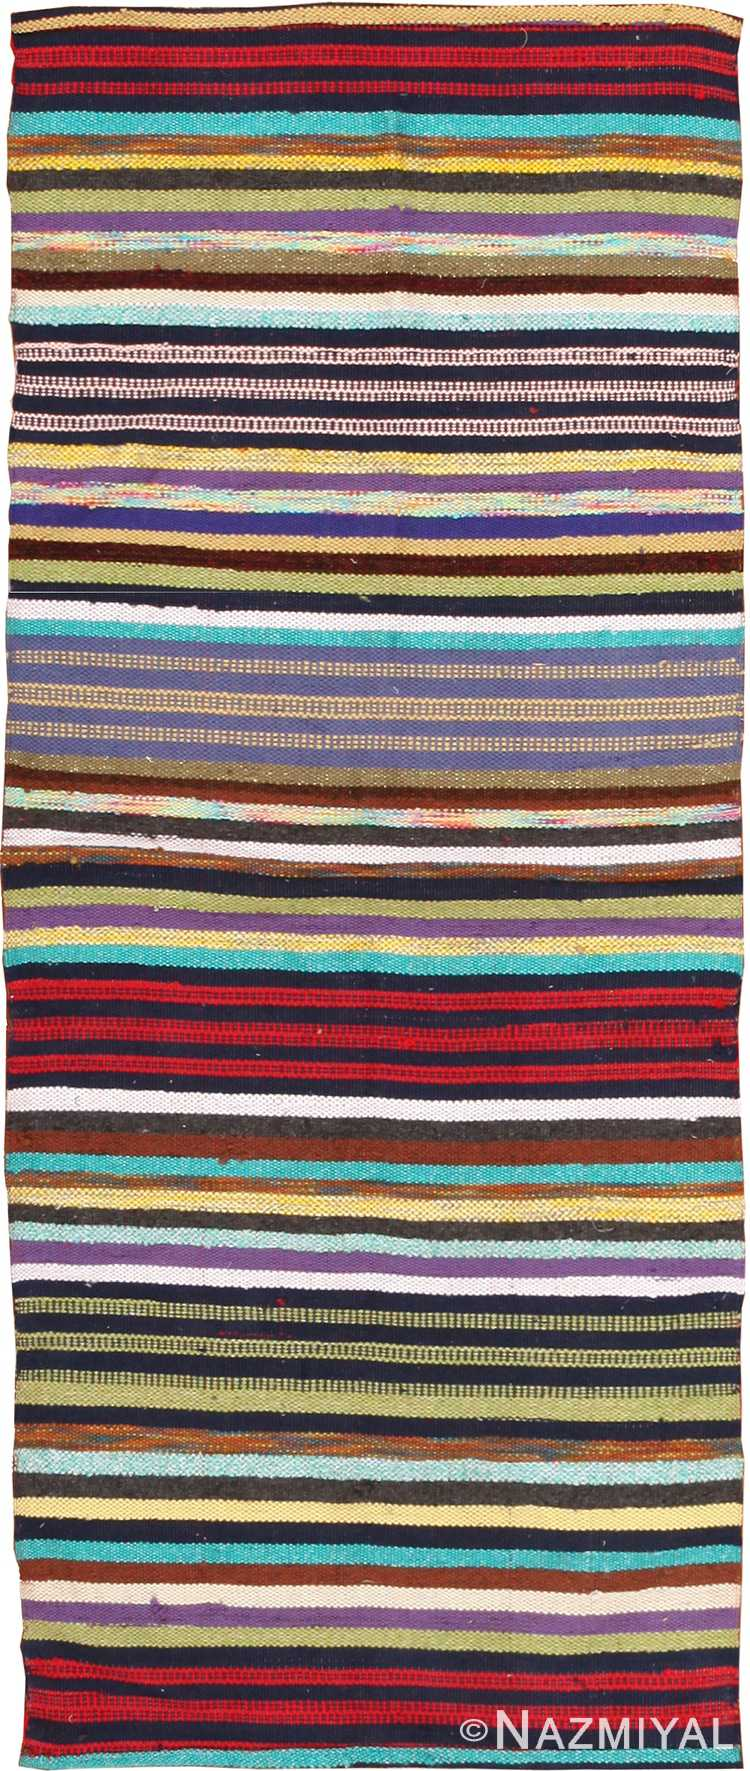 Swedish Rag Rug Vintage Scandinavian Carpet 46662 By Nazmiyal